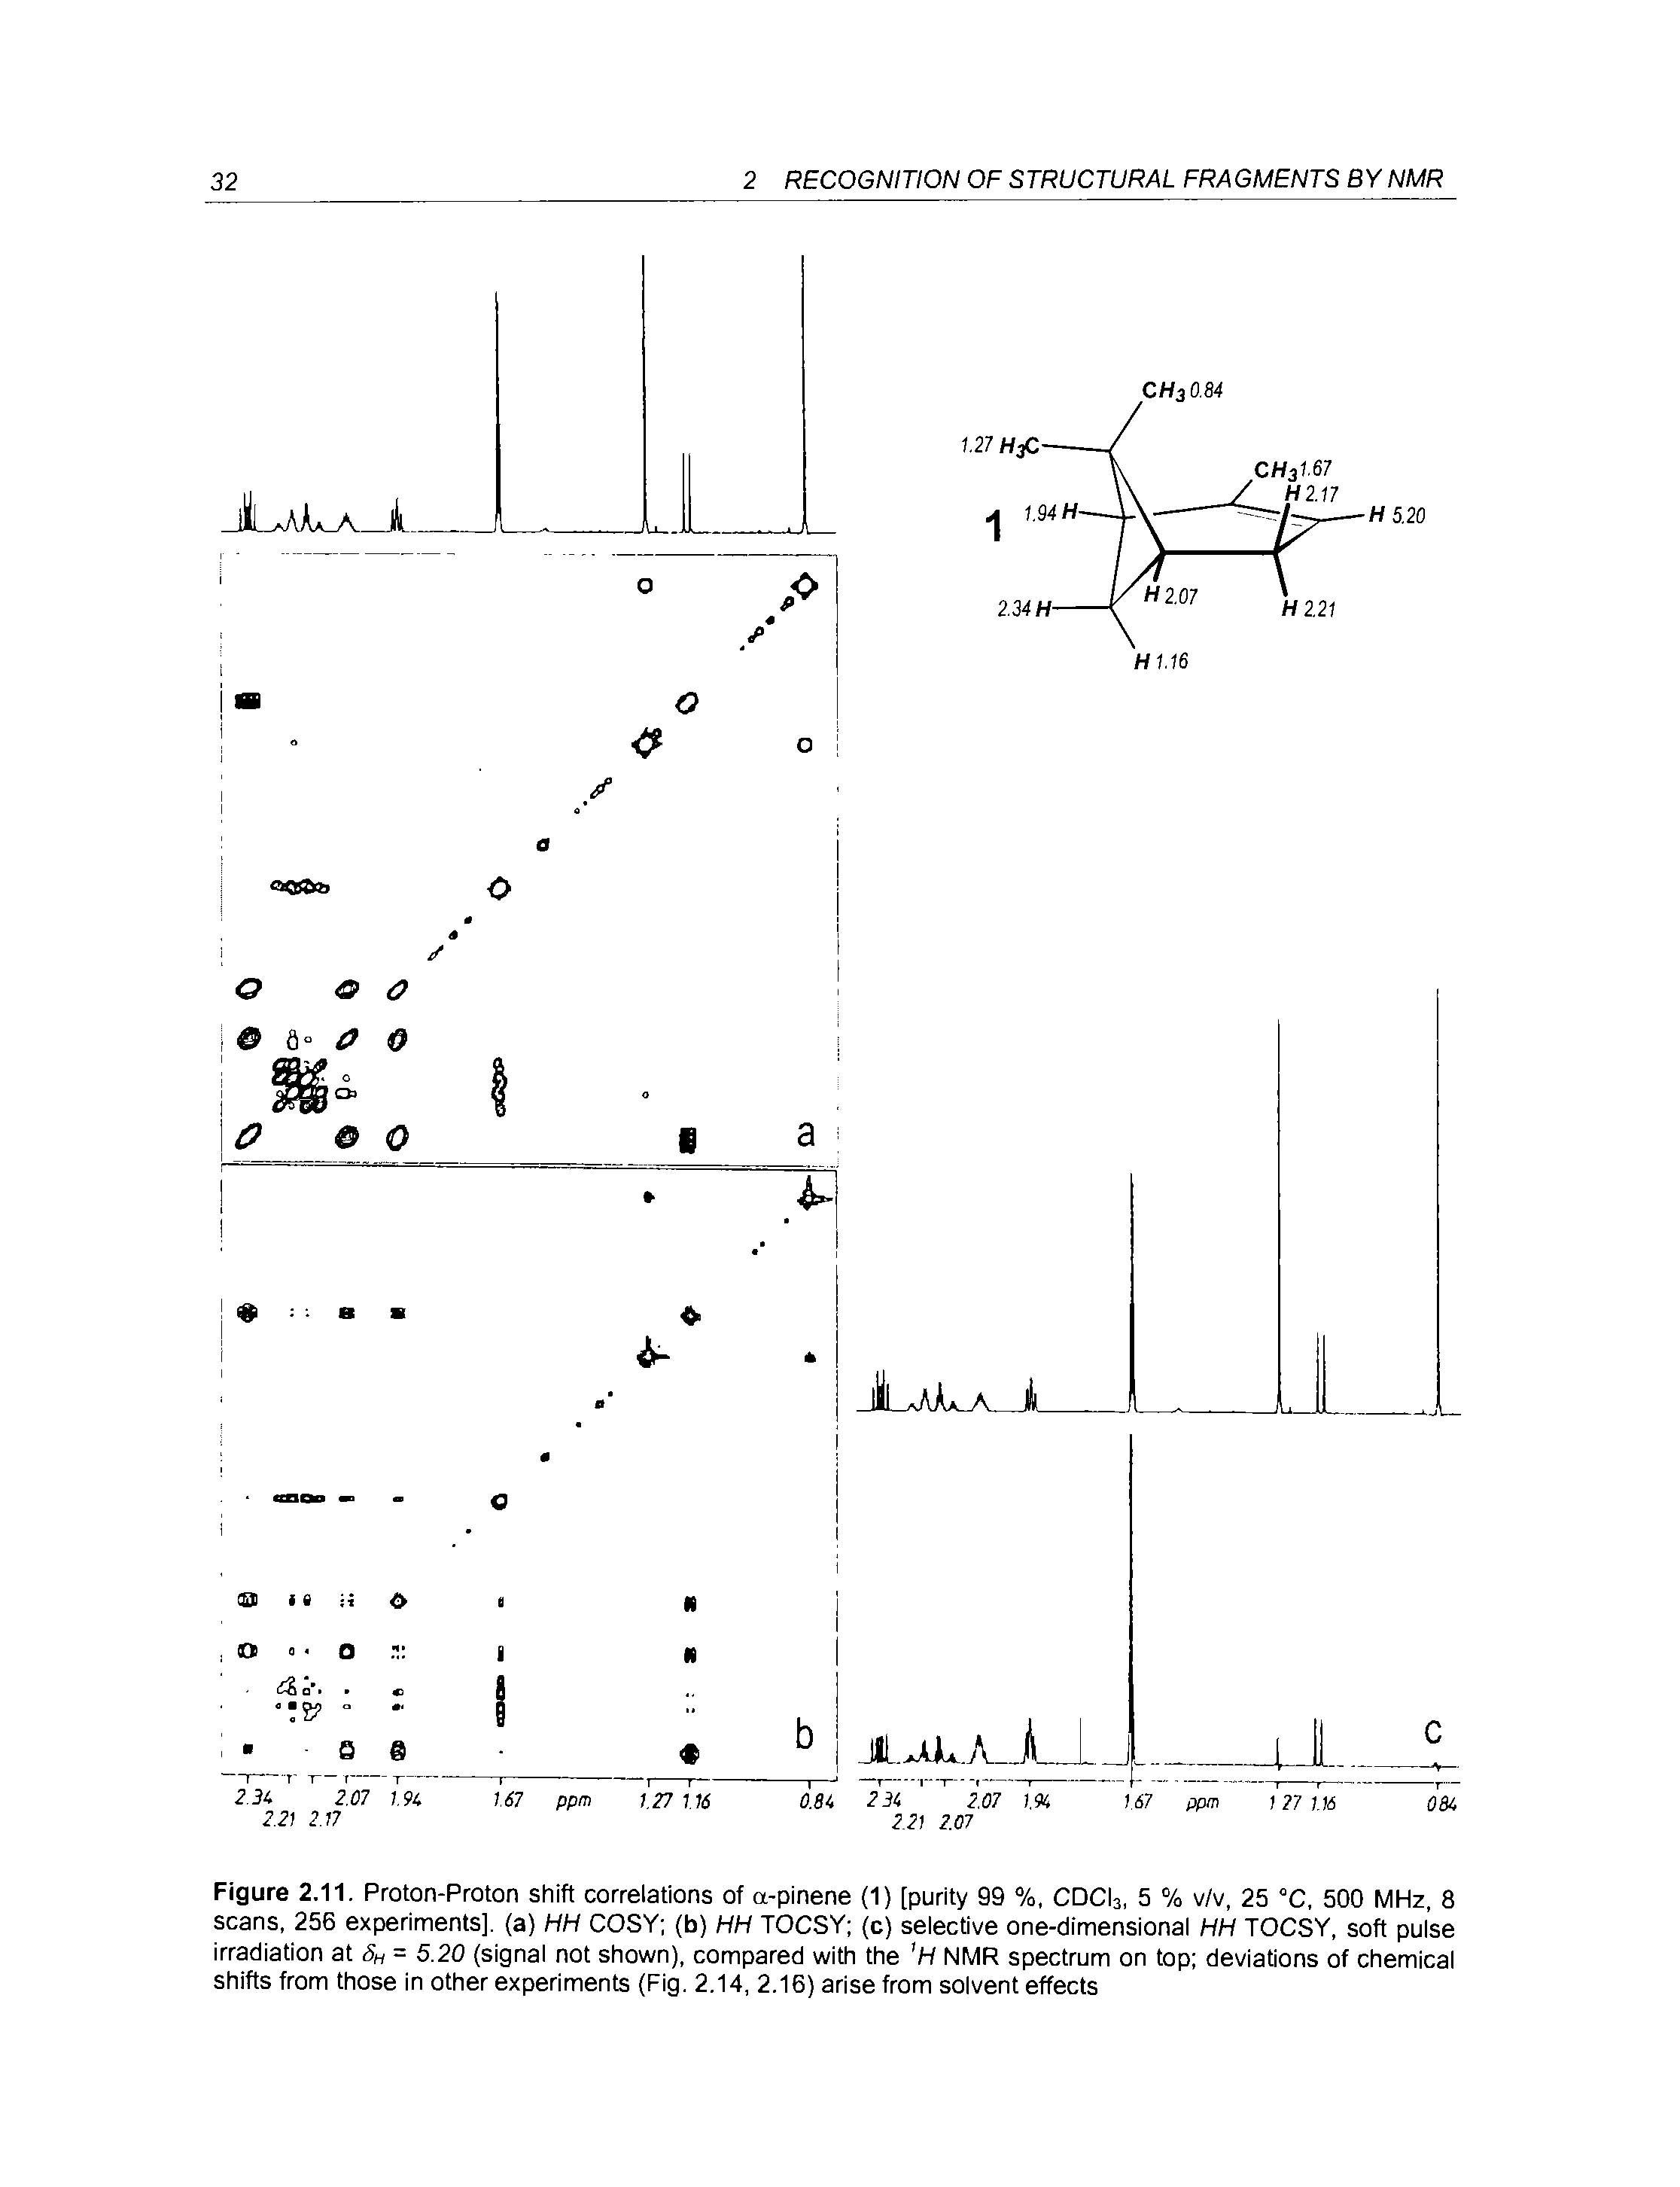 "Figure 2.11. <a href=""/info/proton_nmr_shifts_of_the_hydroxyl"">Proton-Proton shift</a> correlations of a-pinene (1) [purity 99 %, CDCls, 5 % v/v, 25 °C, 500 MHz, 8 scans, 256 experiments], (a) HH COSY (b) HH TOCSY (c) selective one-dimensional HH TOCSY, <a href=""/info/soft_pulse"">soft pulse</a> irradiation at Sh = 5.20 (signal not shown), compared with the NMR spectrum on top deviations of chemical shifts from those in <a href=""/info/other_experiments"">other experiments</a> (Fig. 2.14, 2.16) arise <a href=""/info/from_dry_and_wet_solvent"">from solvent</a> effects"